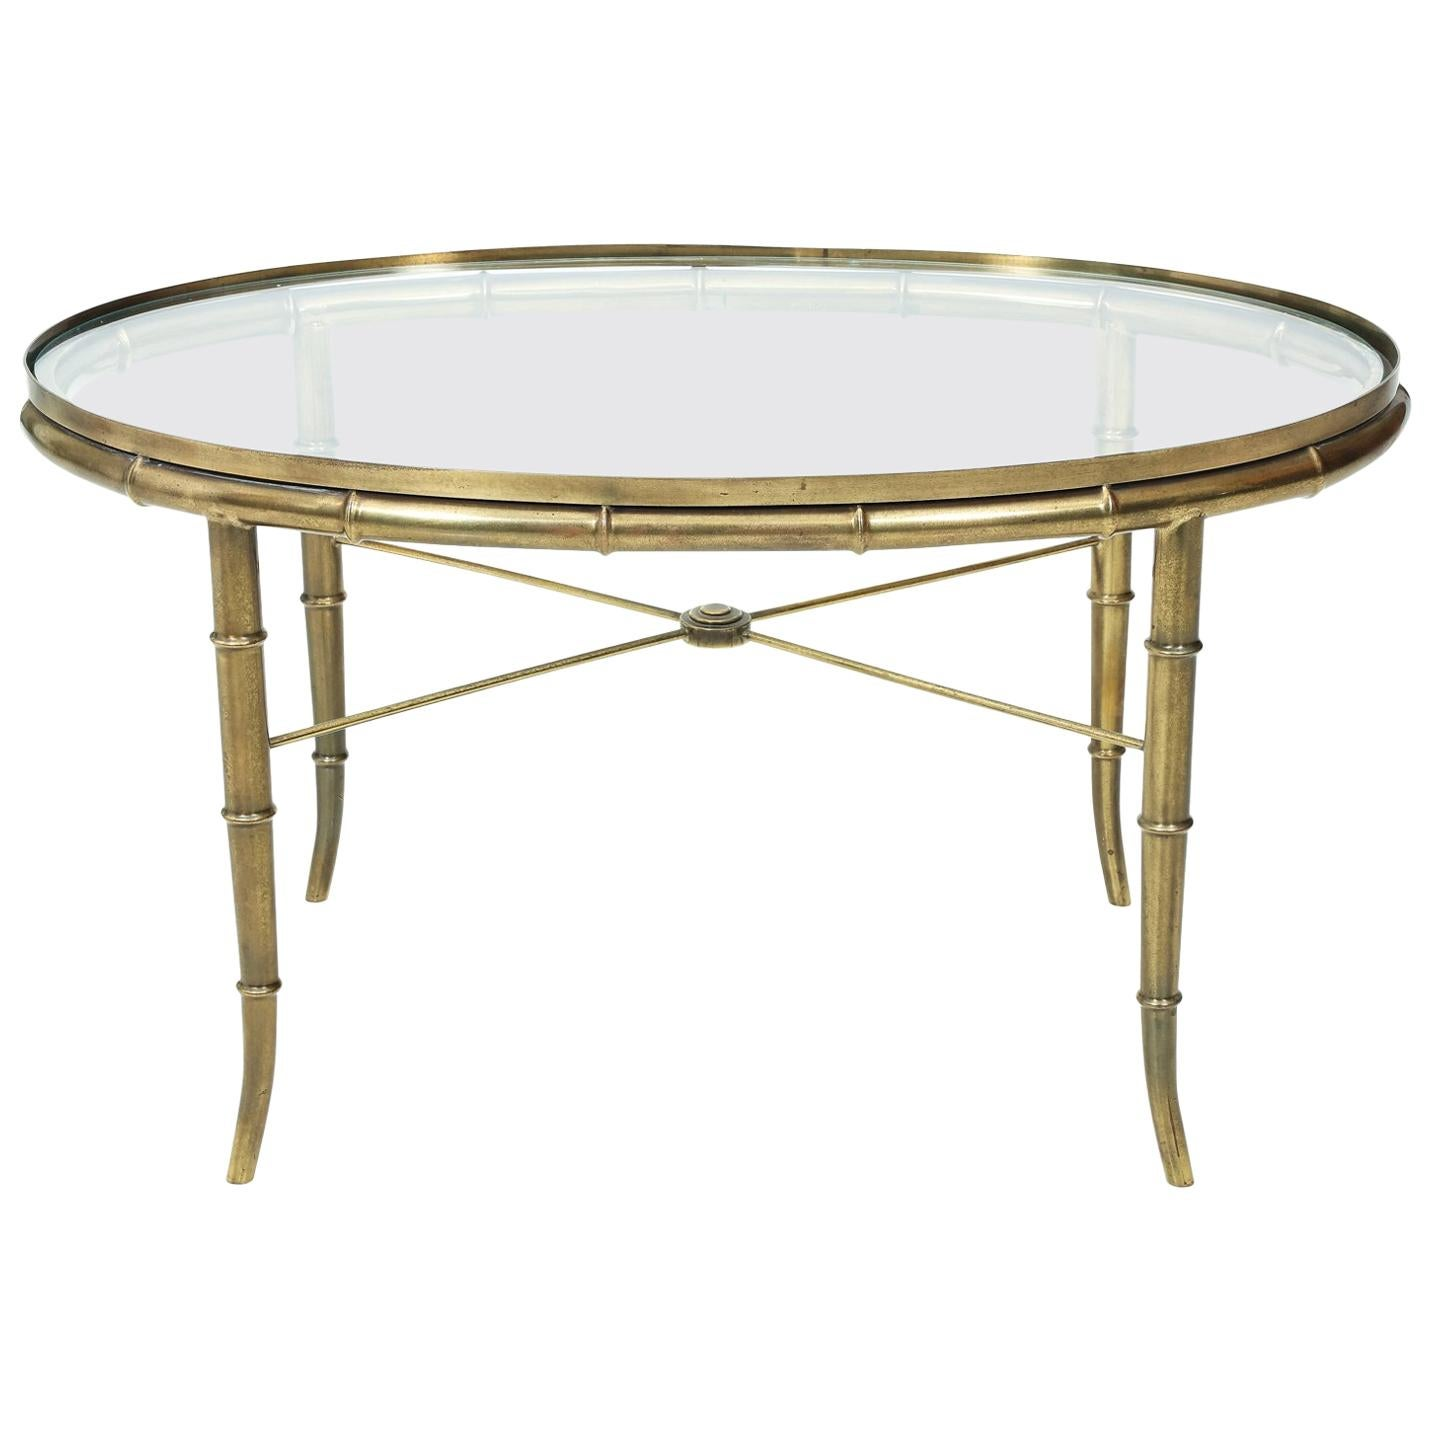 Sophisticated Br Faux Bamboo Oval Tail Table By Mastercraft